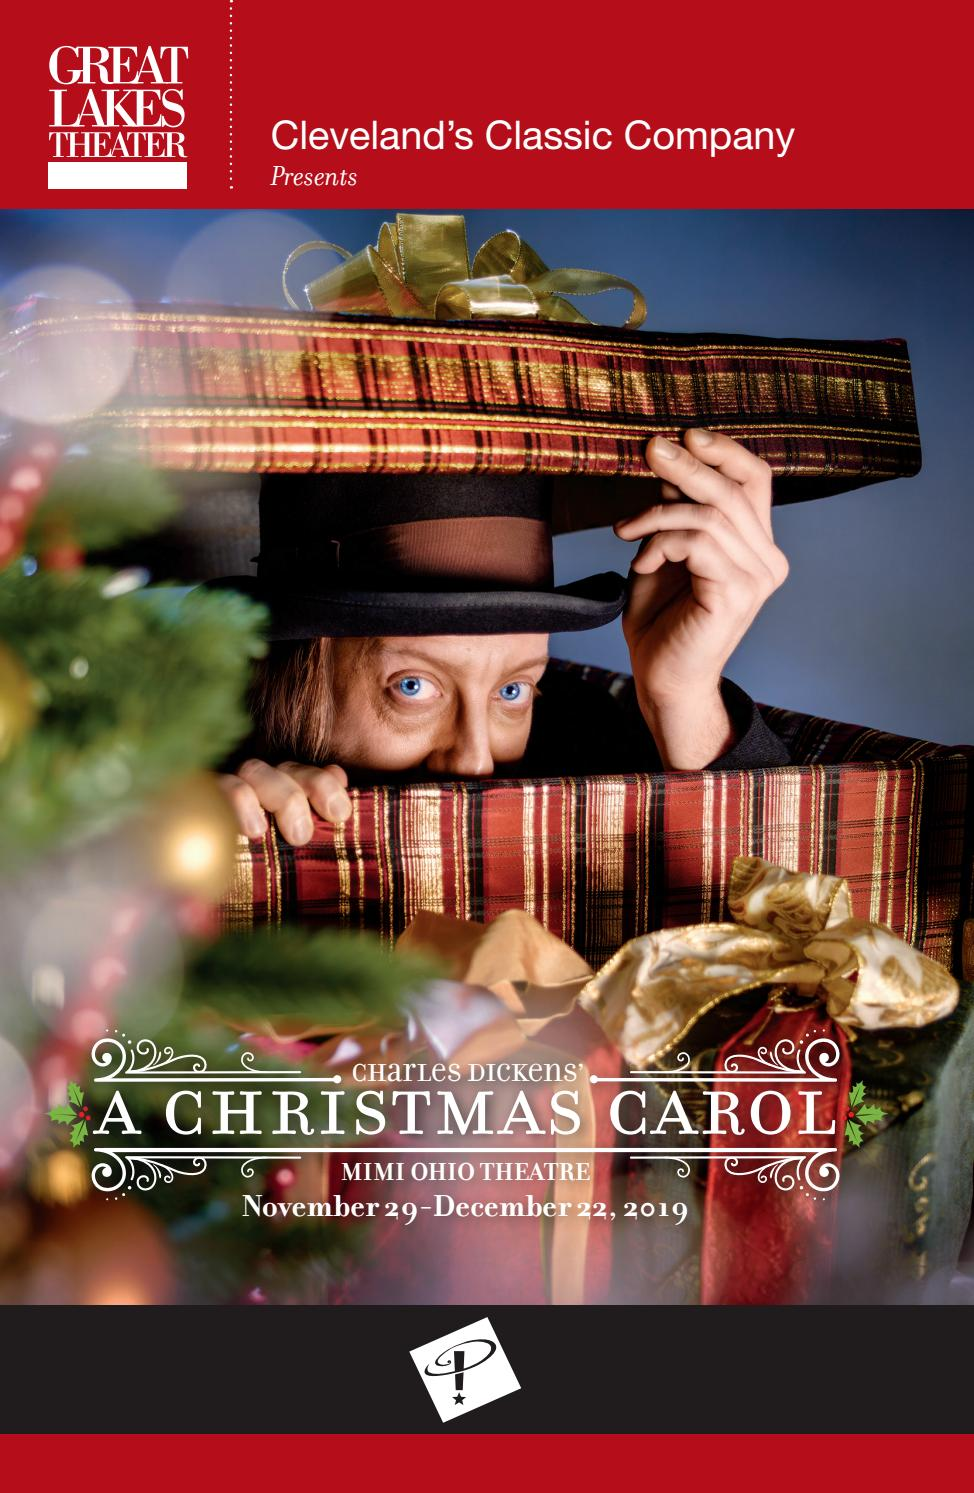 Gallo Center Tims Christmas Carol December 6, 2020 A CHRISTMAS CAROL   Winter 2019 by Great Lakes Theater   issuu